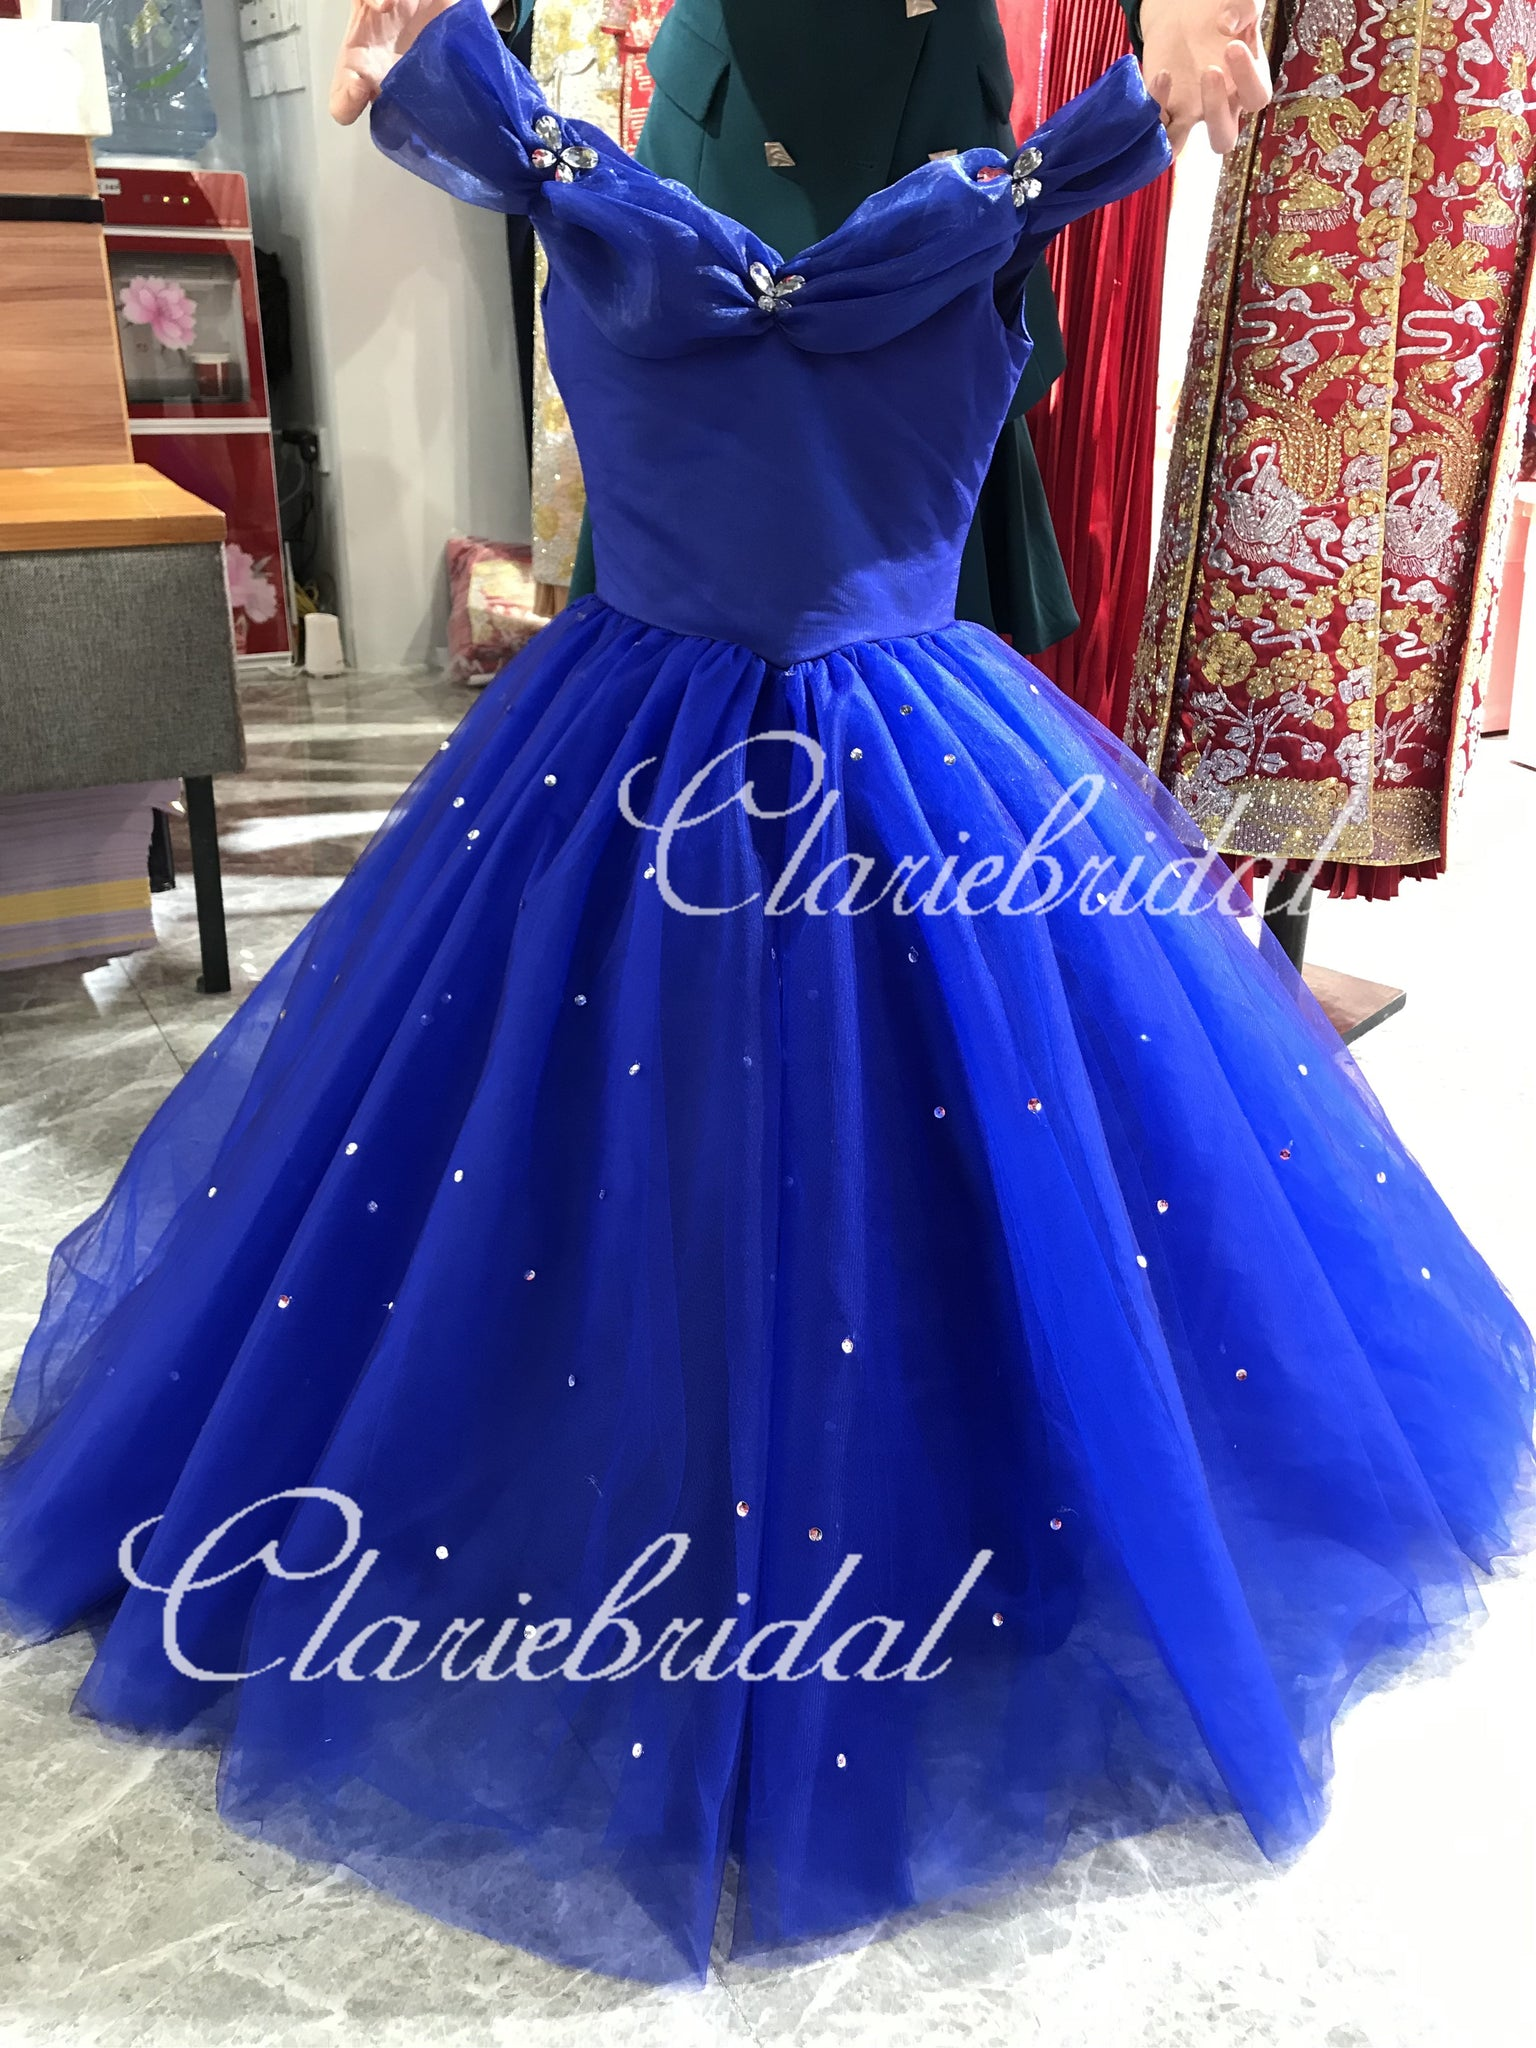 Feedback for Royal Blue Flower Girl Dresses